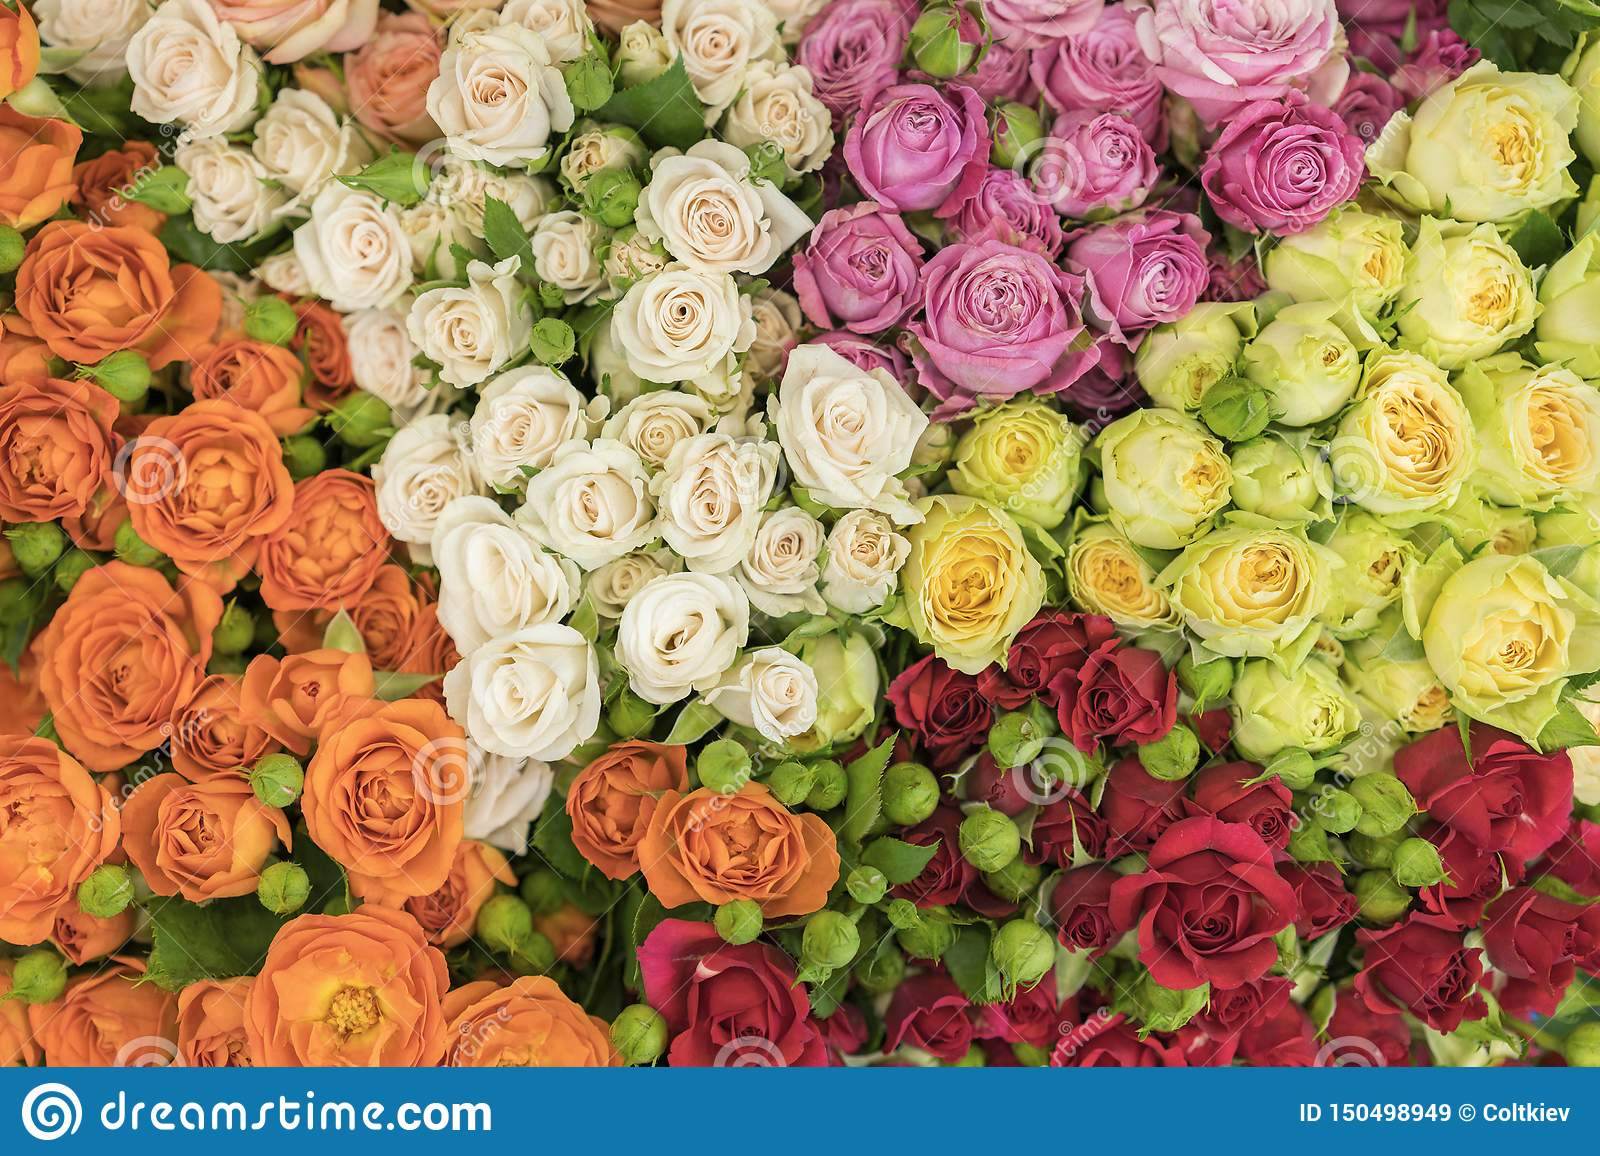 Bright multicolored bouquet of roses. Multicolored fresh roses background. Plenty of colorful bright roses close up